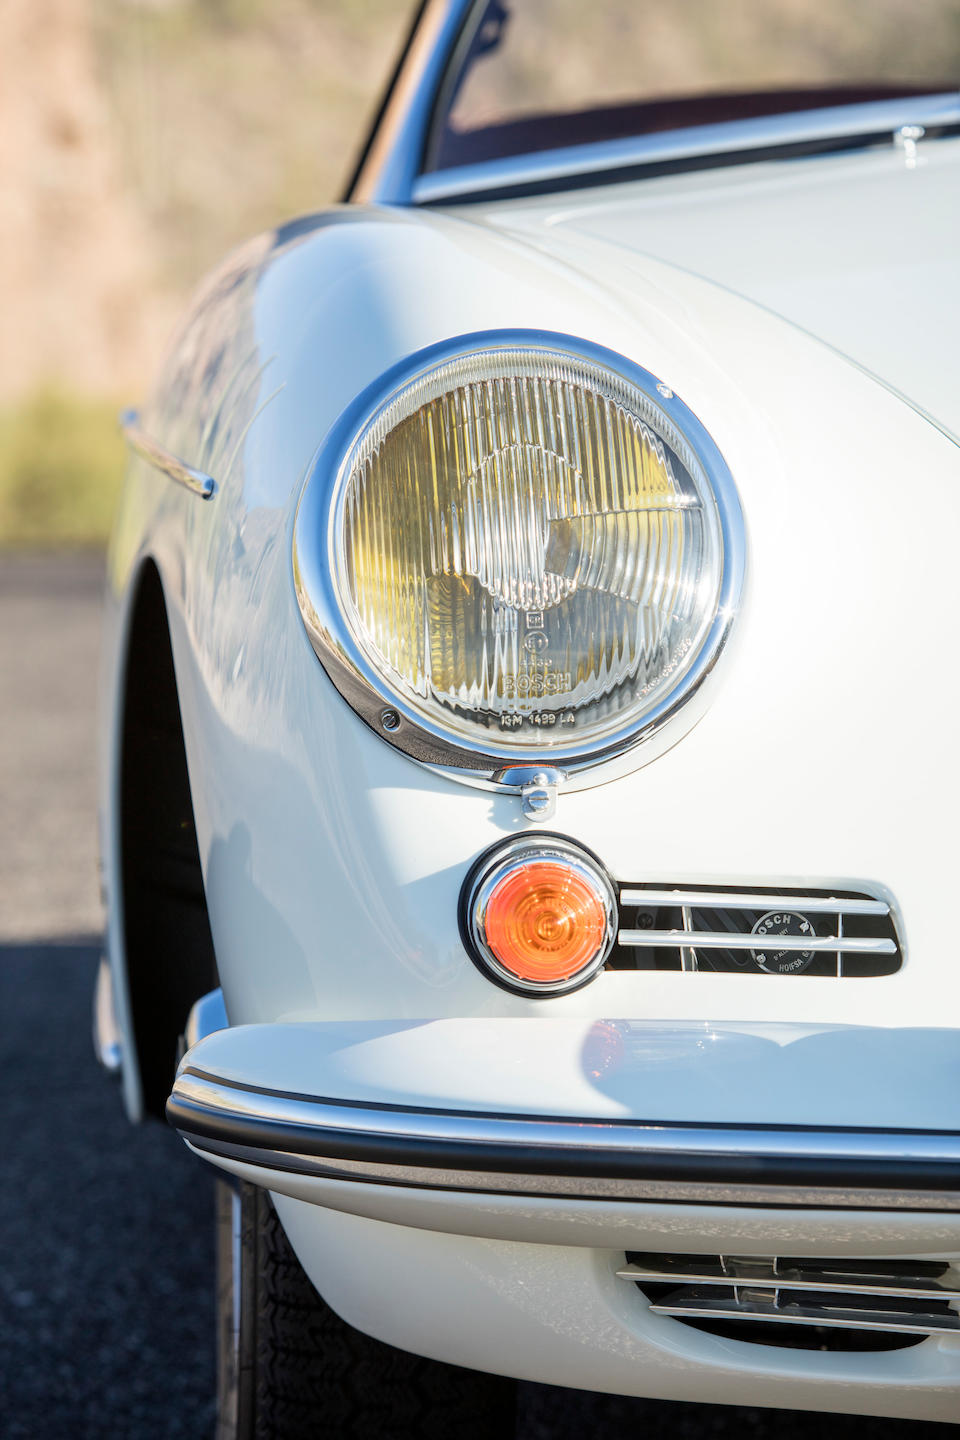 <B>1960 Porsche 356B 1600 Super 90 Roadster</B><br />Chassis no. 88106<br />Engine no. 801723 (see text)